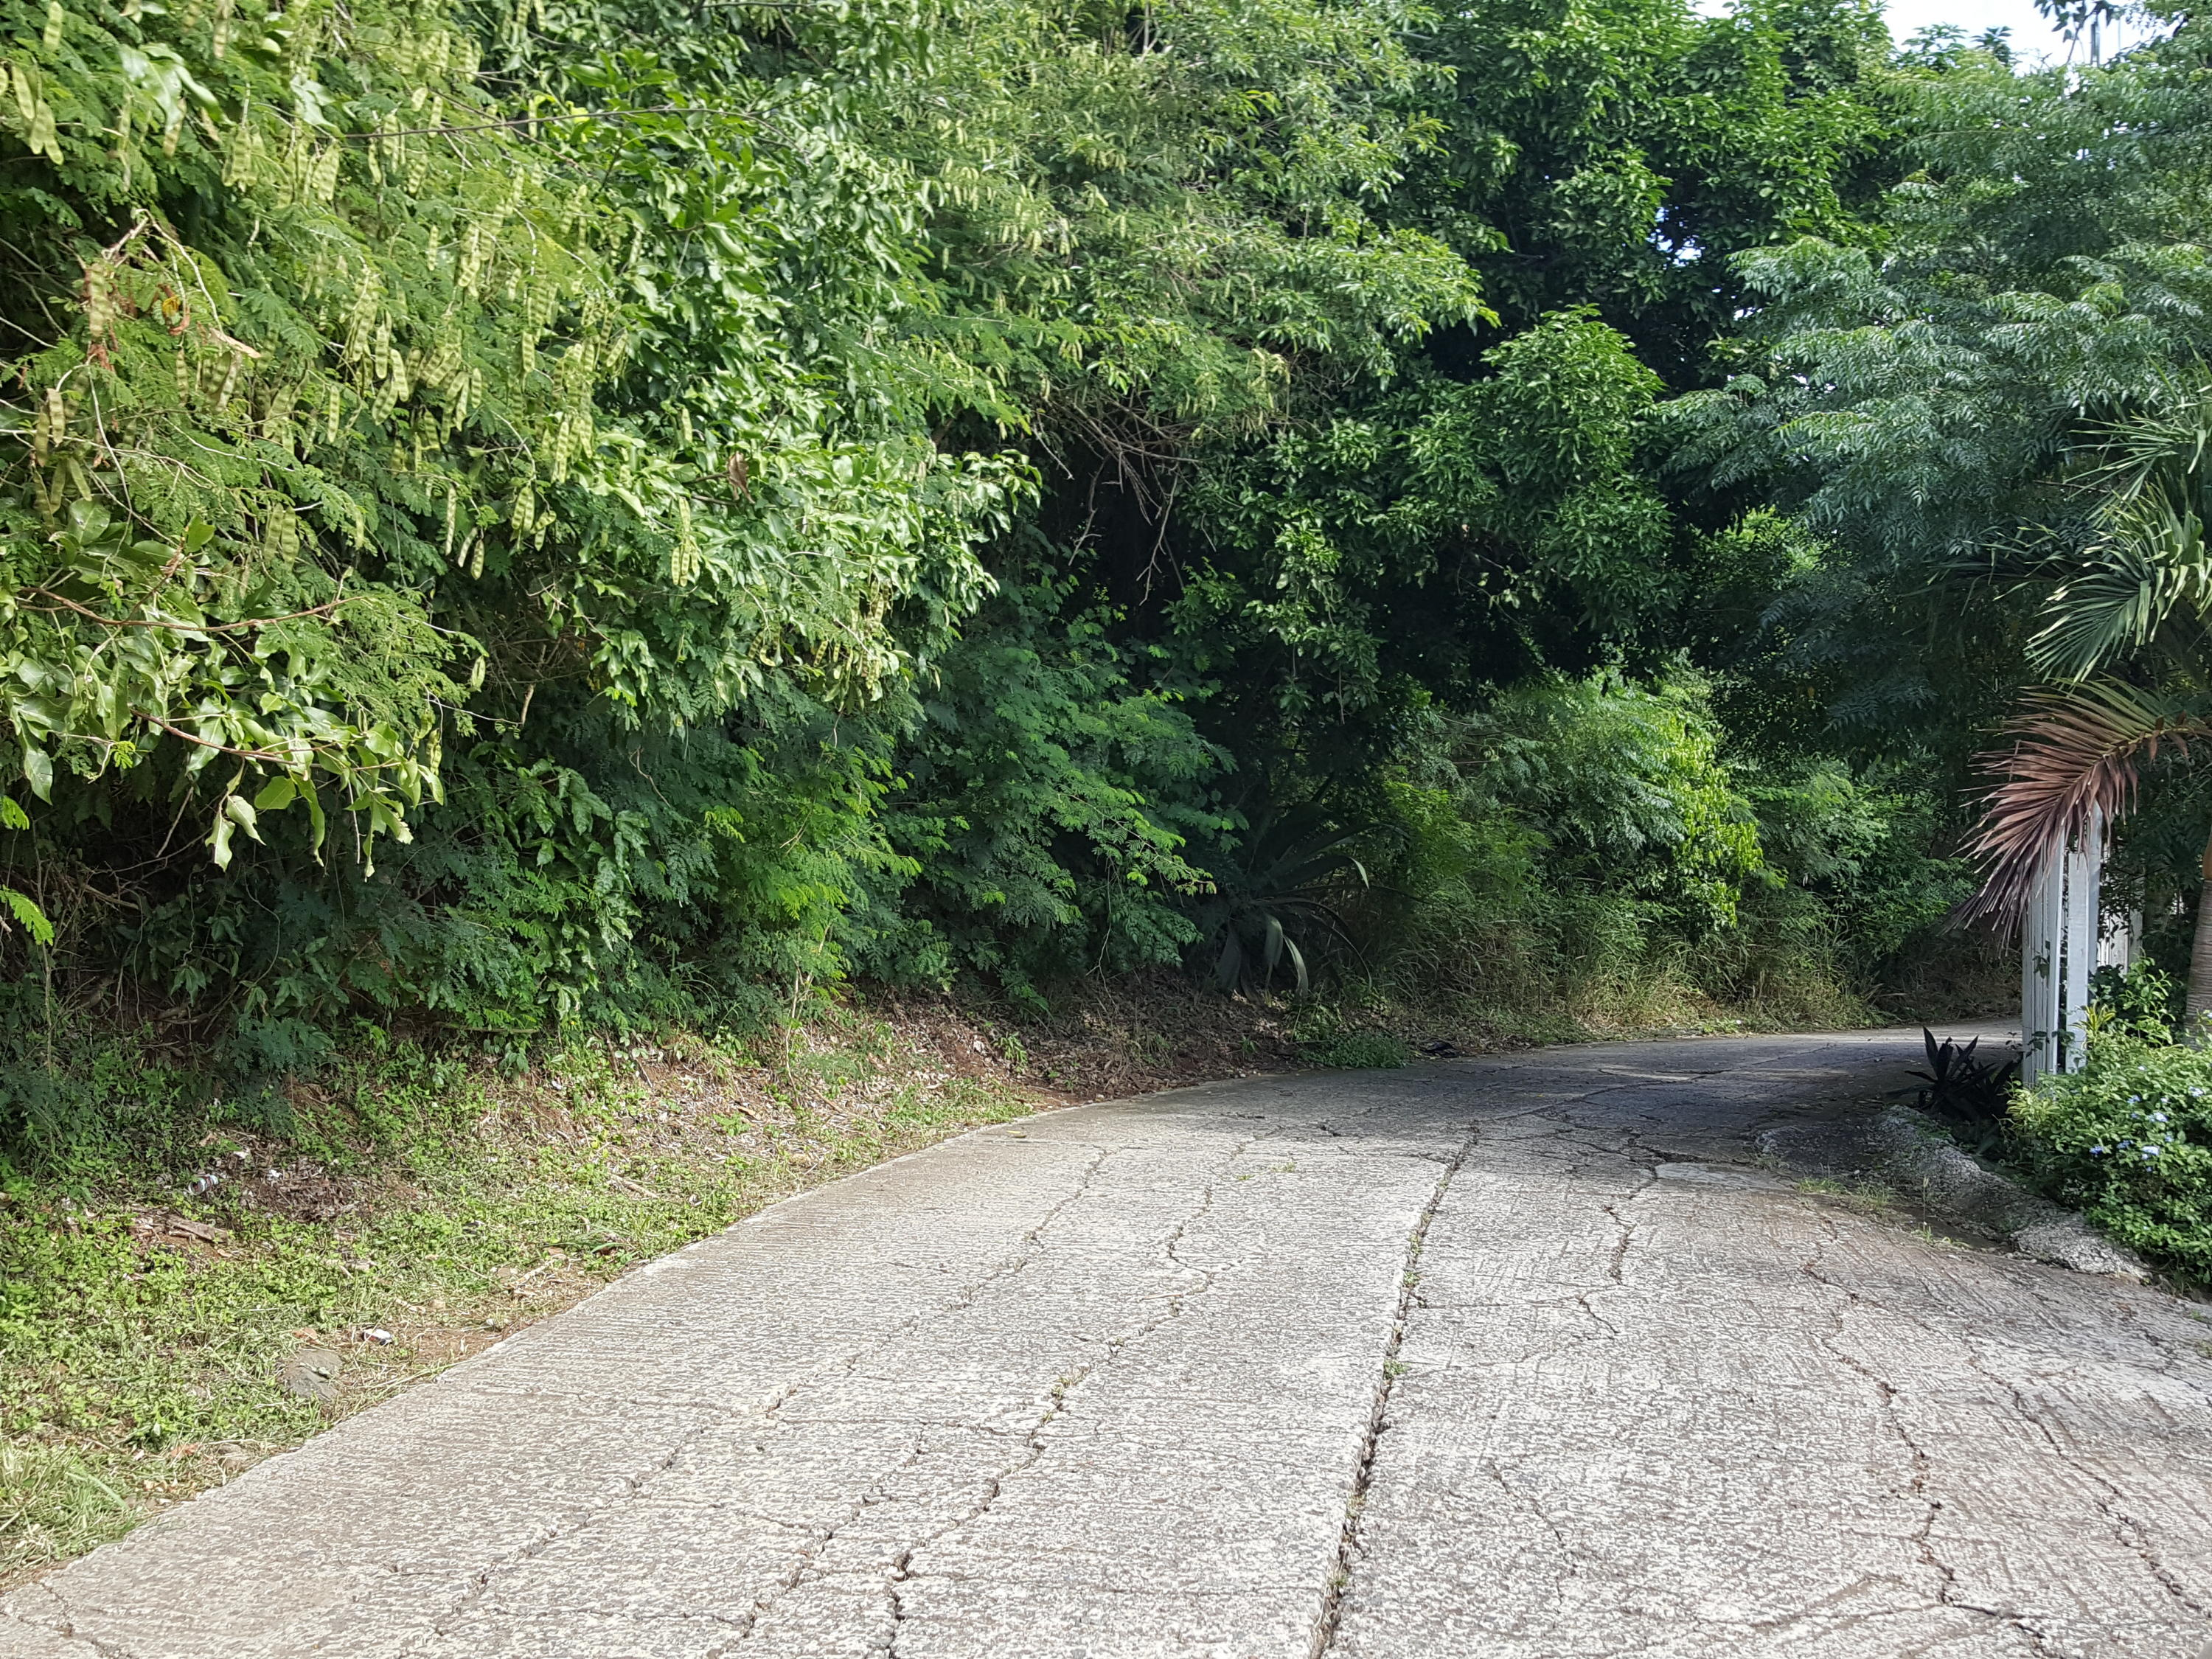 Land Long Paved Lower Road